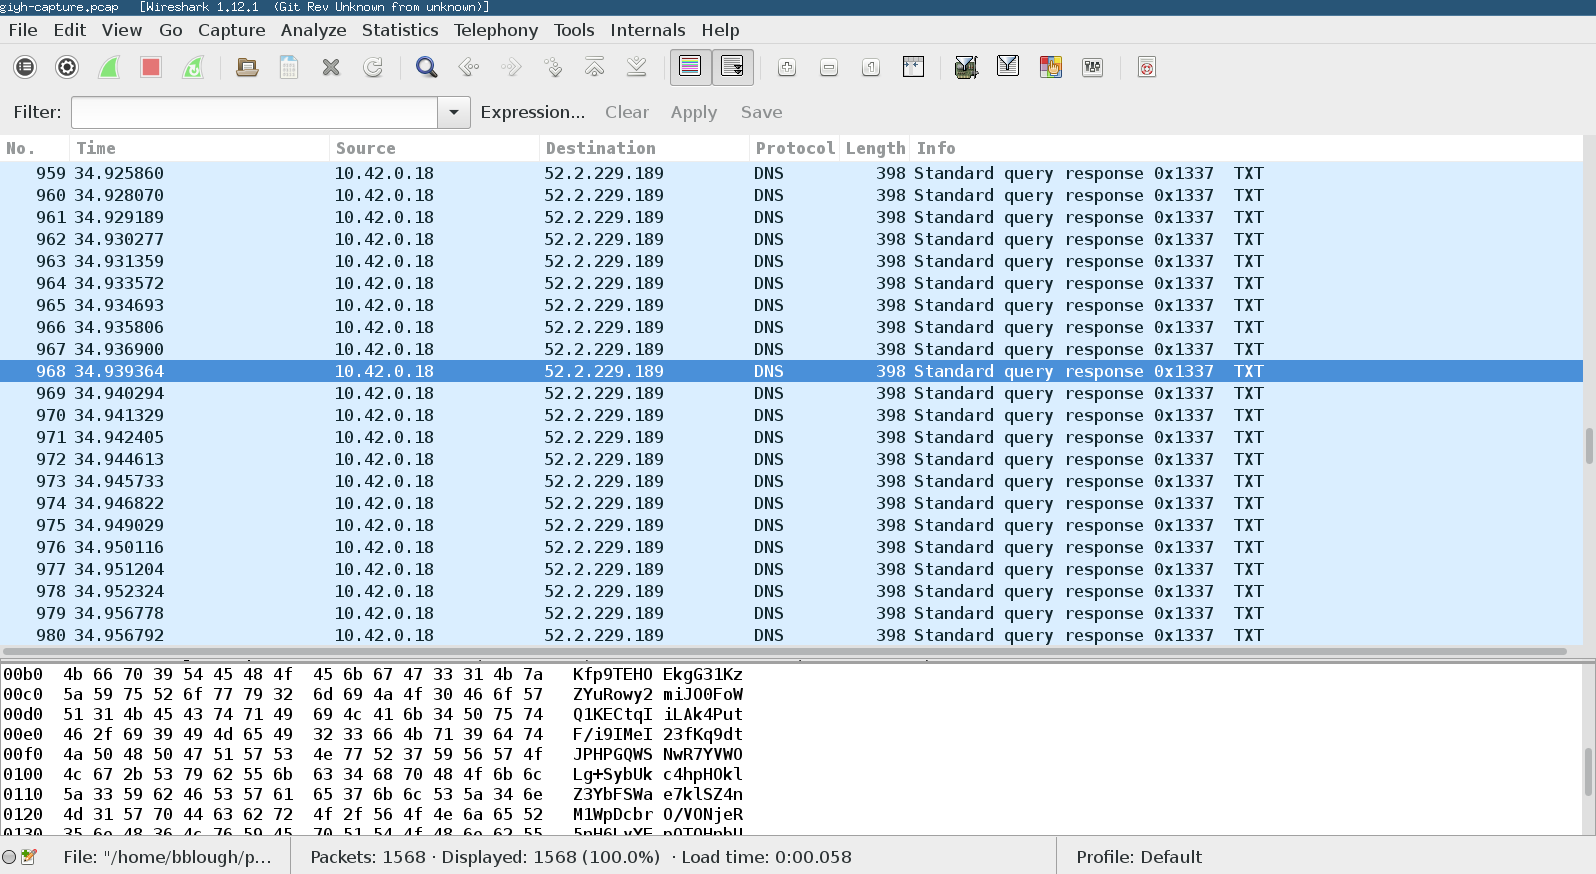 Viewing the packet capture in Wireshark